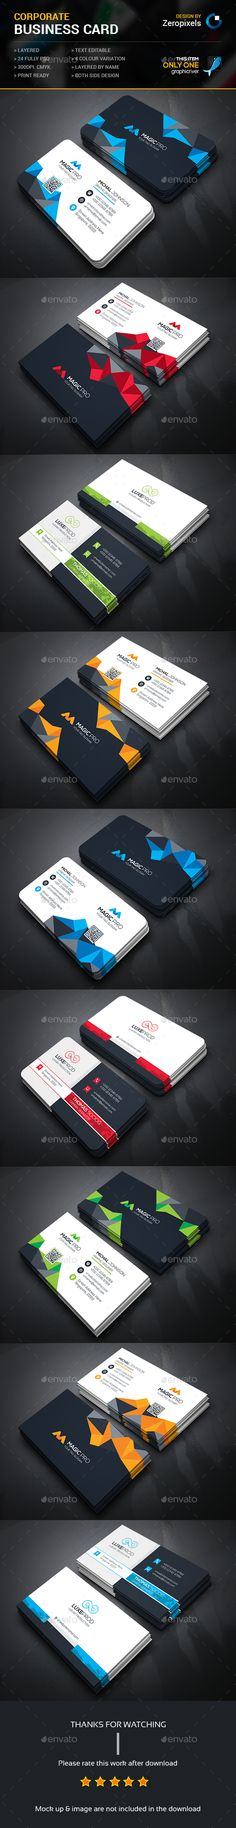 Business Card Bundle — Photoshop PSD #green #pack • Available here → https://graphicriver.net/item/business-card-bundle/15462744?ref=pxcr